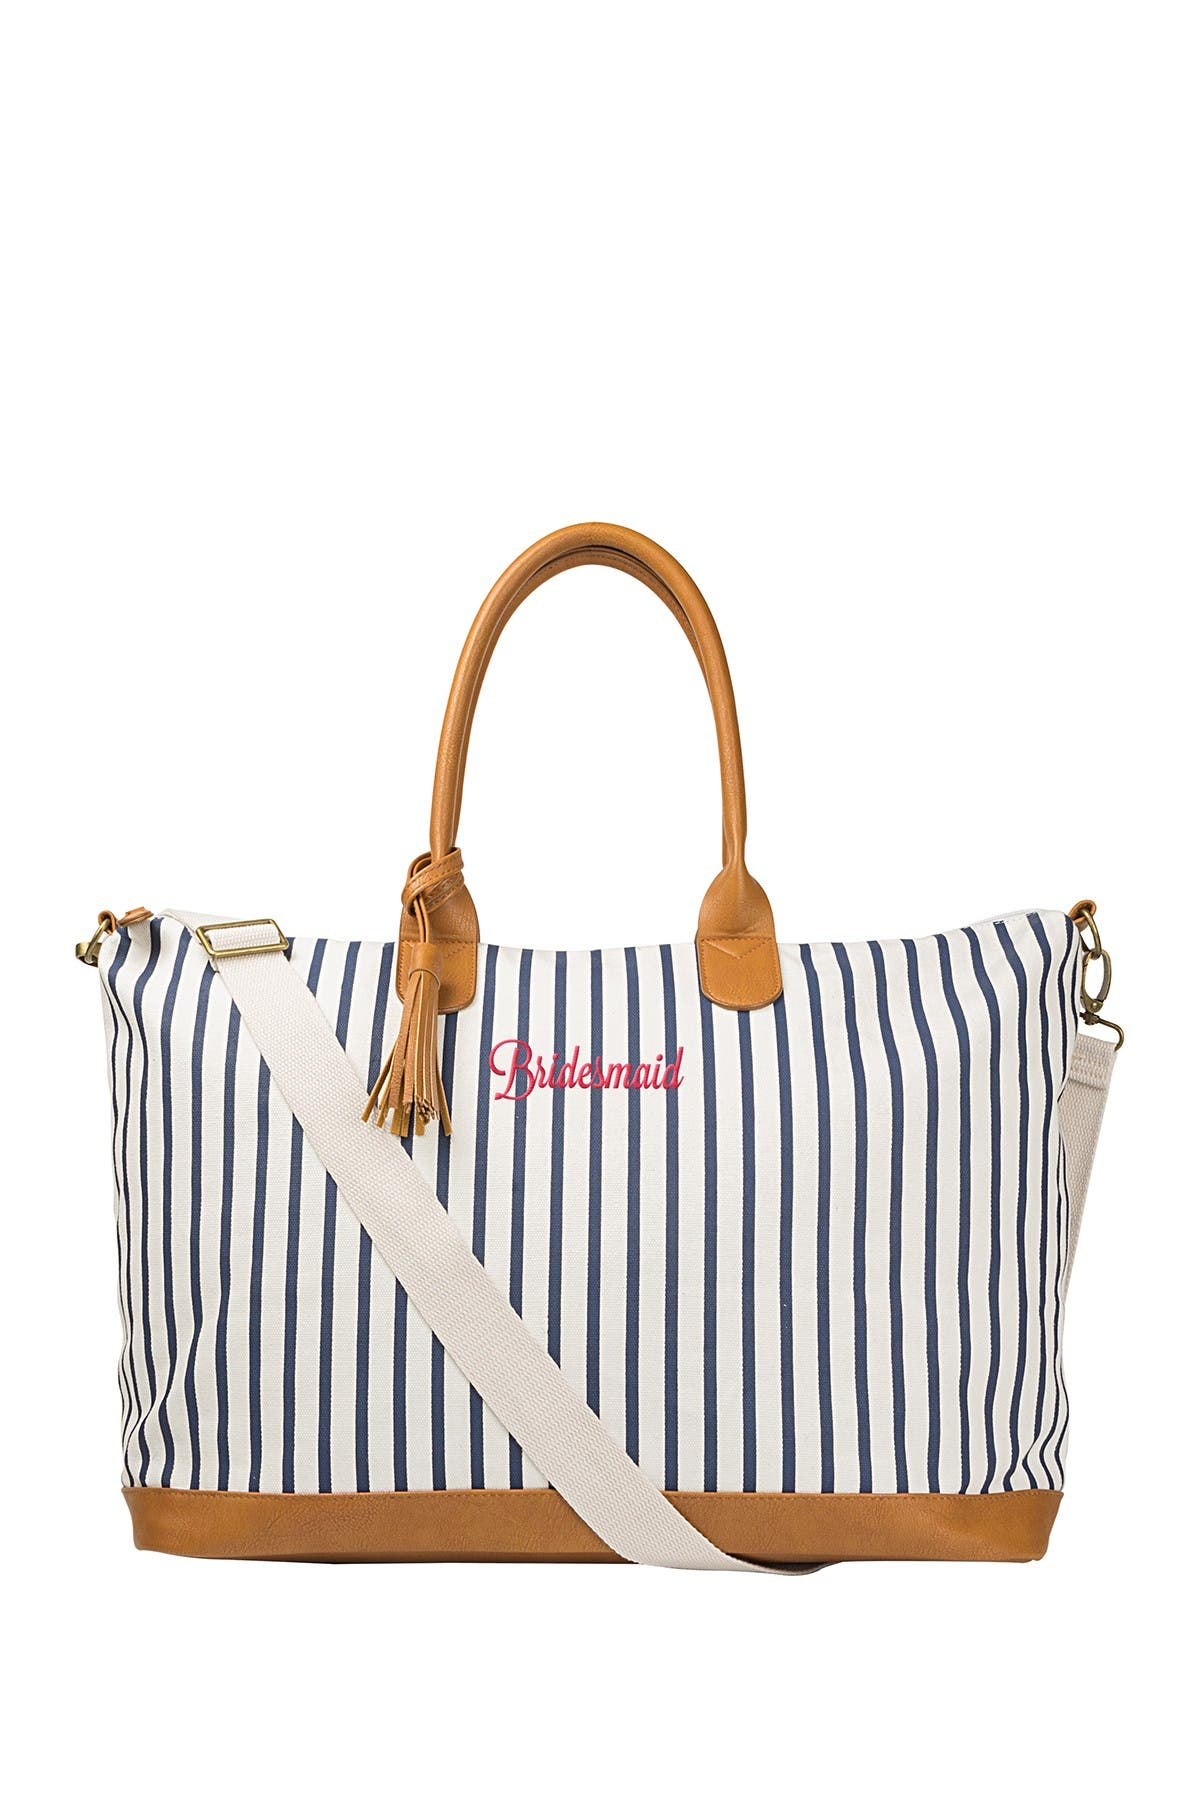 Image of Cathy's Concepts Bridesmaid Striped Weekend Tote